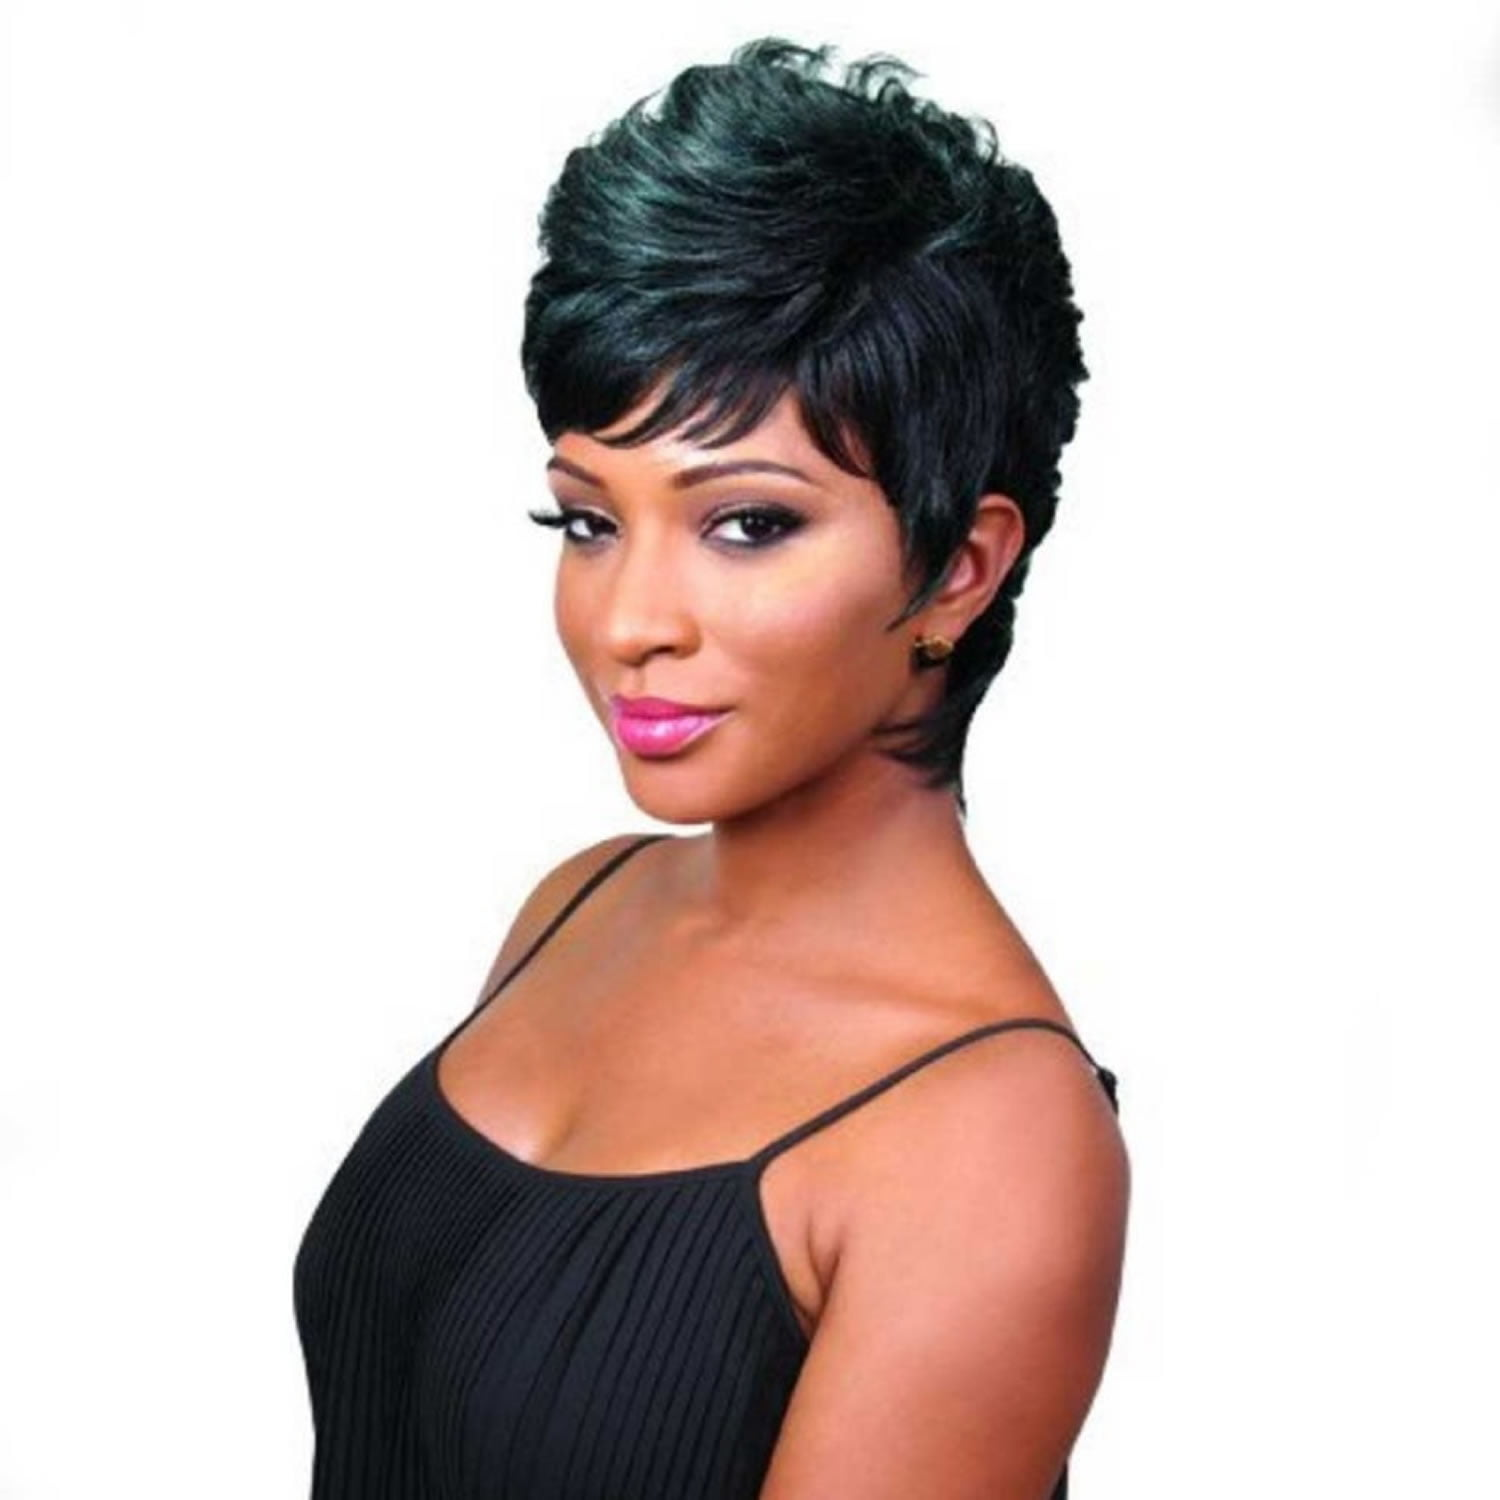 Short Haircuts for Black Women - 72 Pixie Short Black Hair ideas 2021 Update - Page 4 - HAIRSTYLES